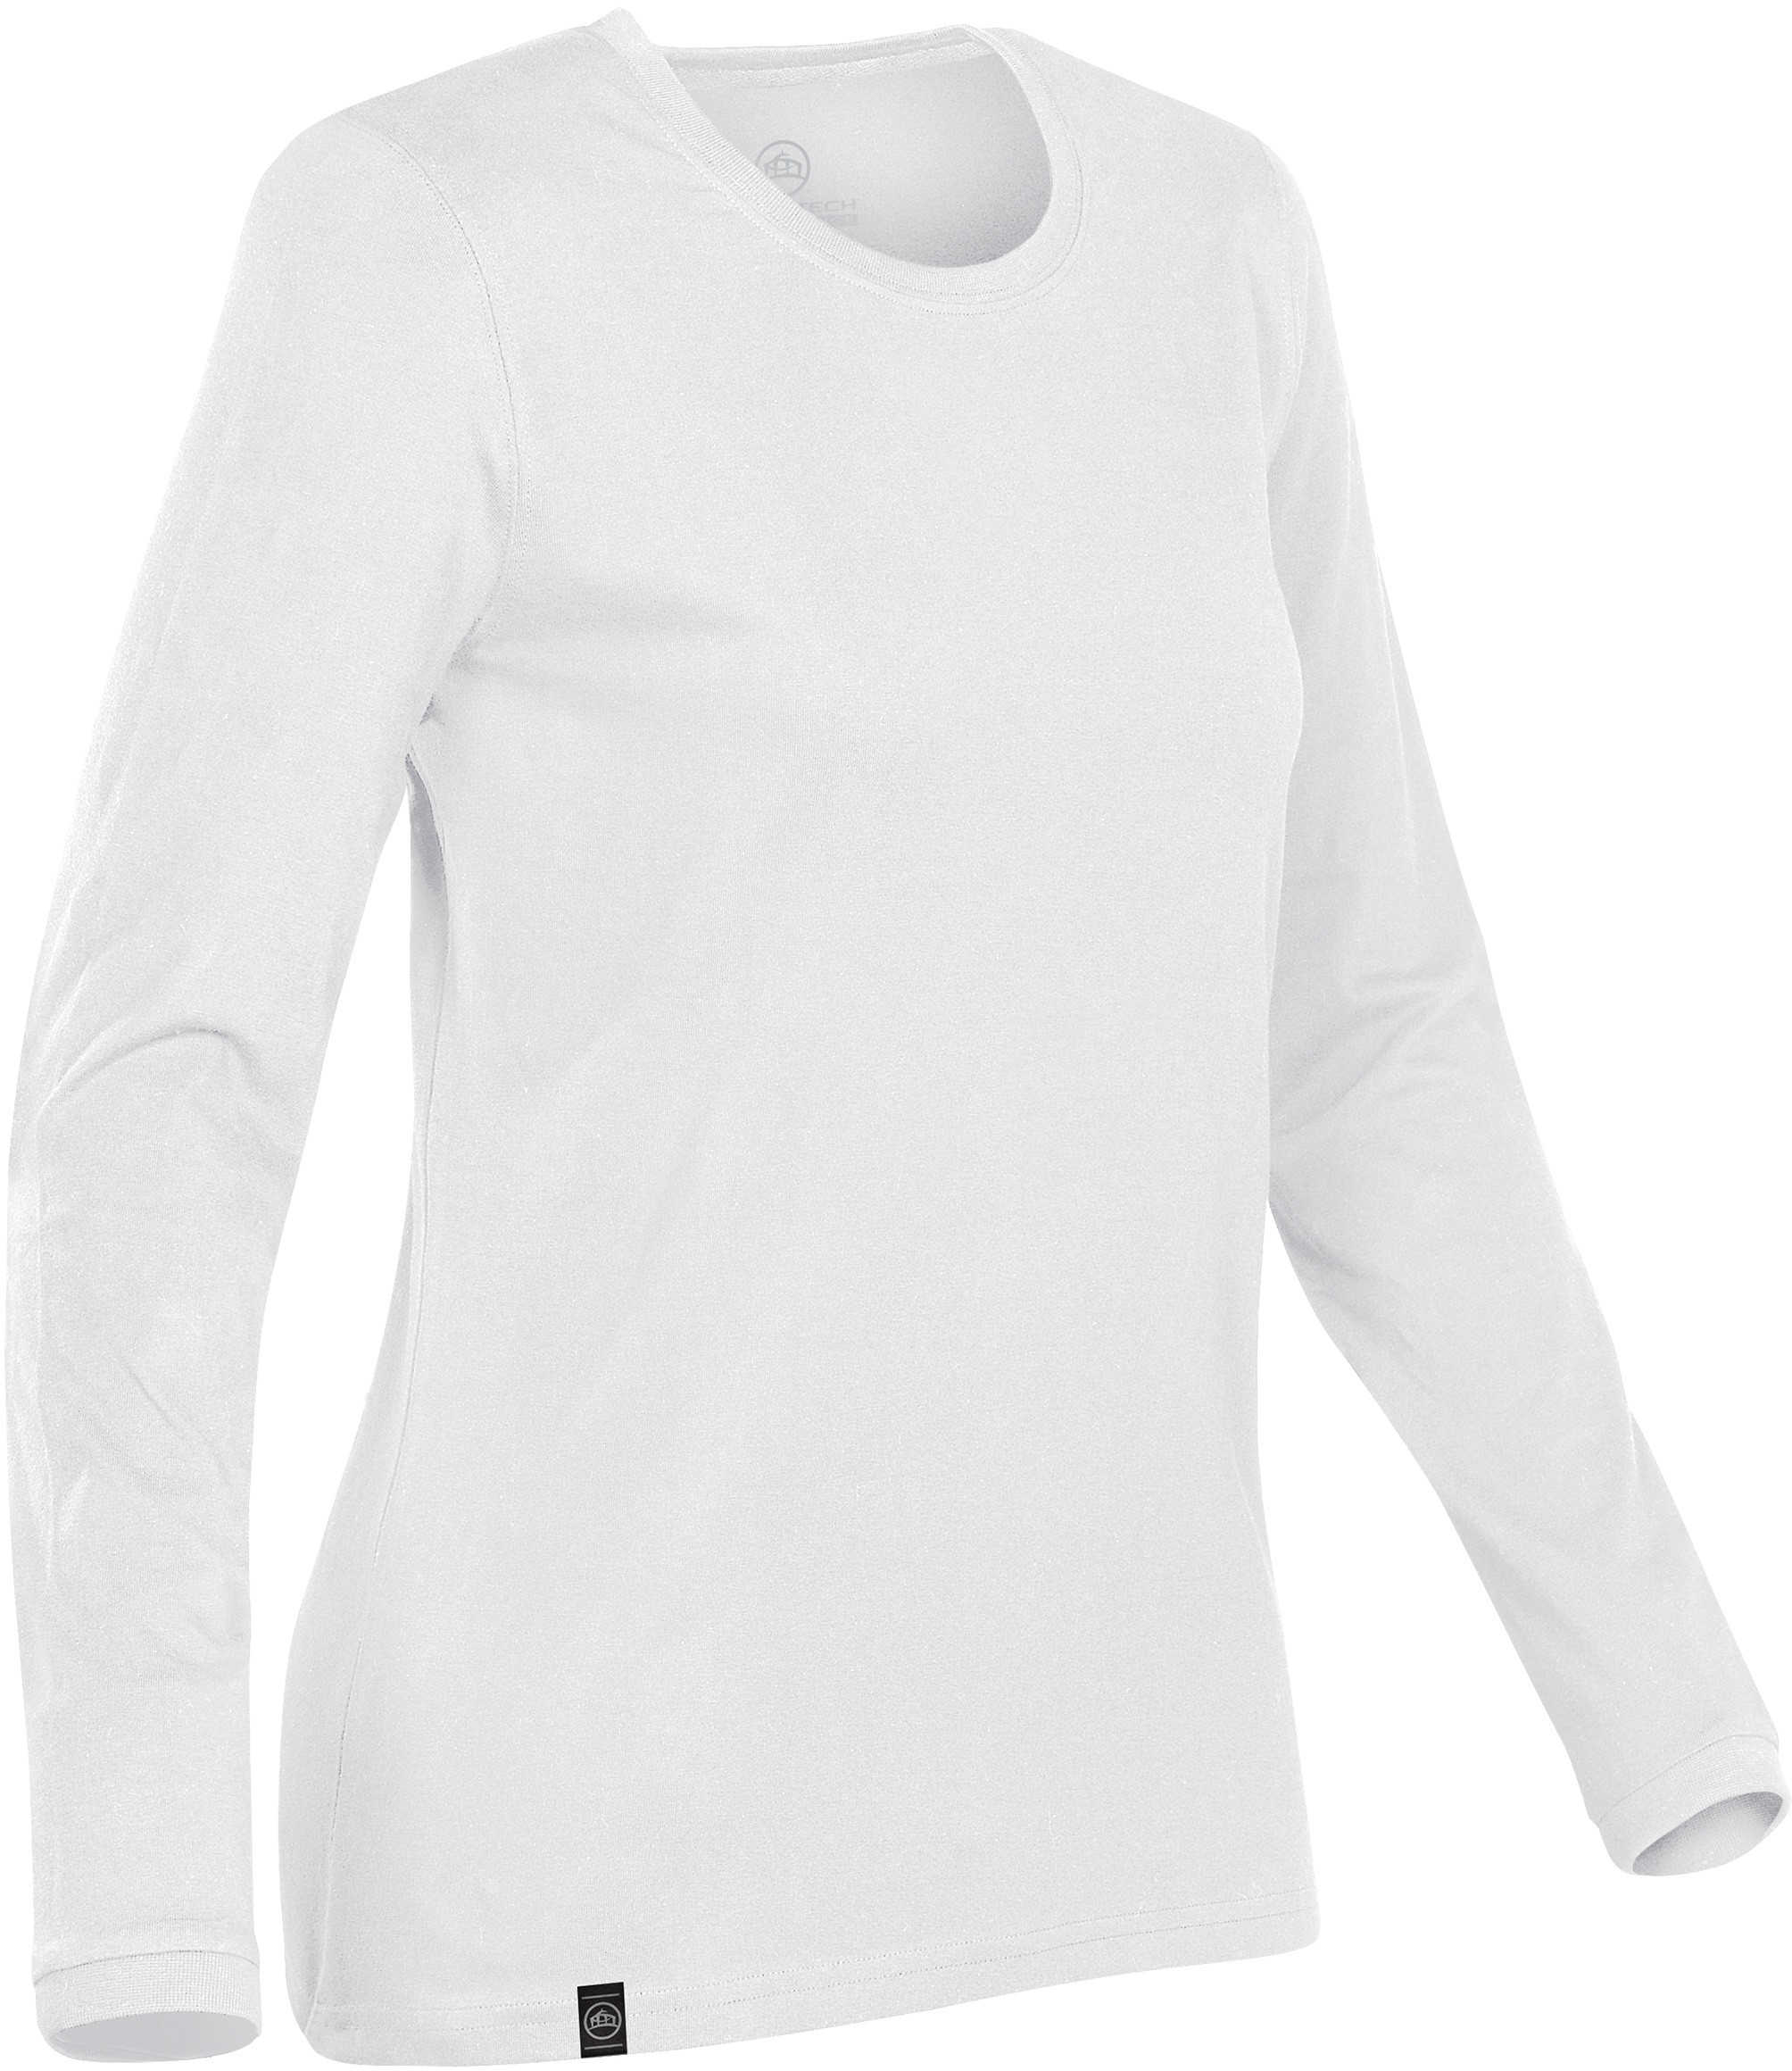 Stormtech Women's Baseline Long Sleeve Tee